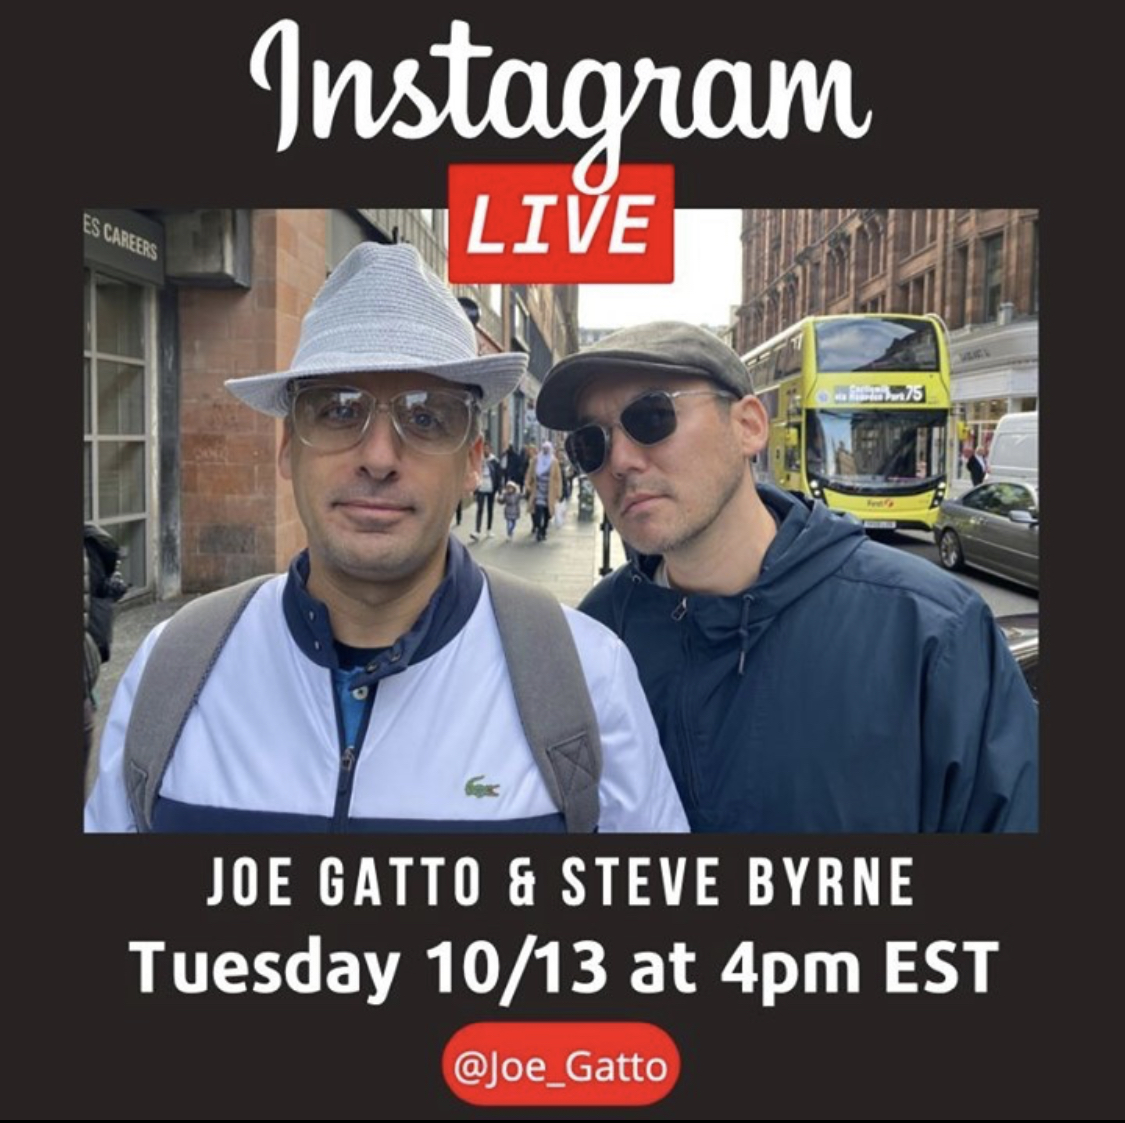 Tomorrow's the day. Come hang with me and my friend @stevebyrnelive on my Instagram live. See you at 4pm EST! https://t.co/Jm0Iq8taTP